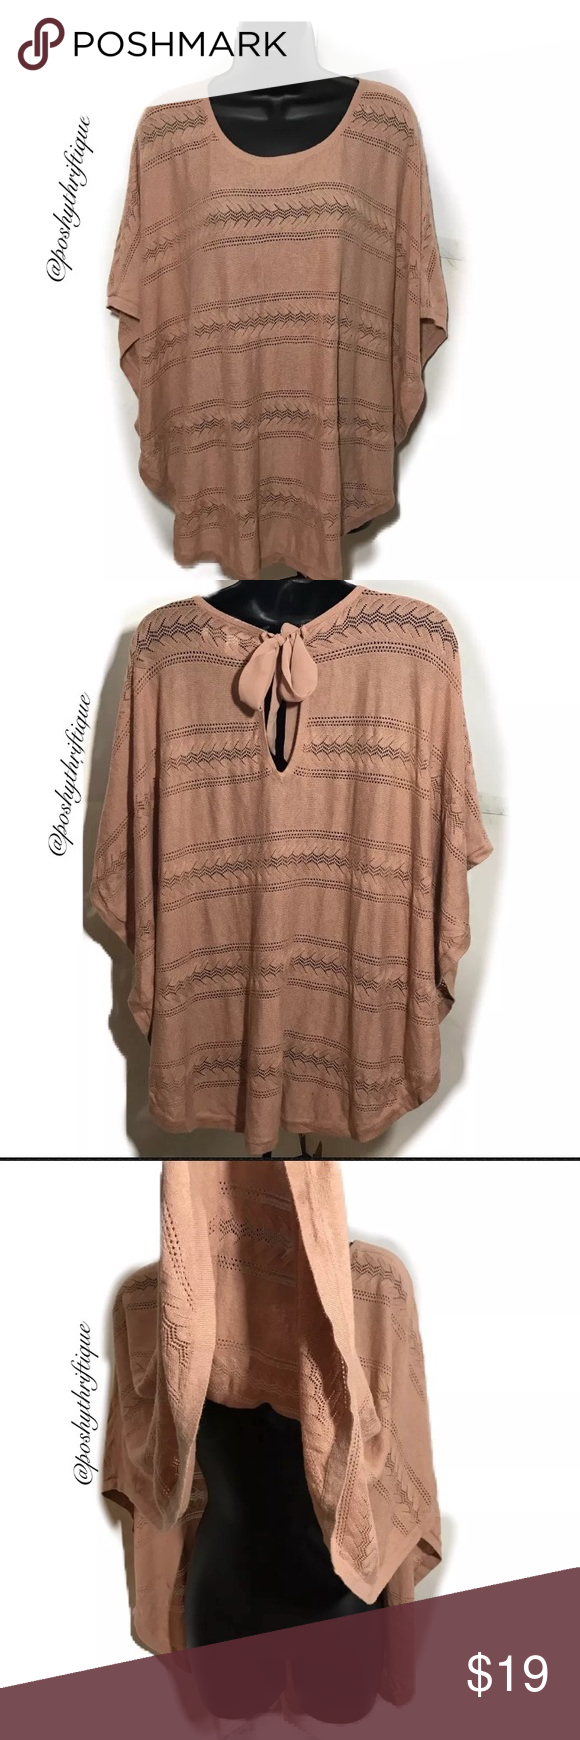 Lauren Conrad Mauve Poncho Cape Sweater S/M SIZE : s / m STYLE : oversized, cape poncho sweater with a keyhole tie closure on back. eyelet detail throught sweater. cotton blend with rayon ,thin knit,  BRAND : LC Lauren Conrad MATERIAL : 60% cotton 40% rayon COLOR : mauve, brown, light brown MEASUREMENTS: Length - Approx: 24.5 '' Across - Across: 35 '' CONDITION: In Excellent Pre Owned condition COUNTRY OF MANUFACTURER: china SMOKE FREE & PET FREE ENVIRONMENT All Items Are Steamed…